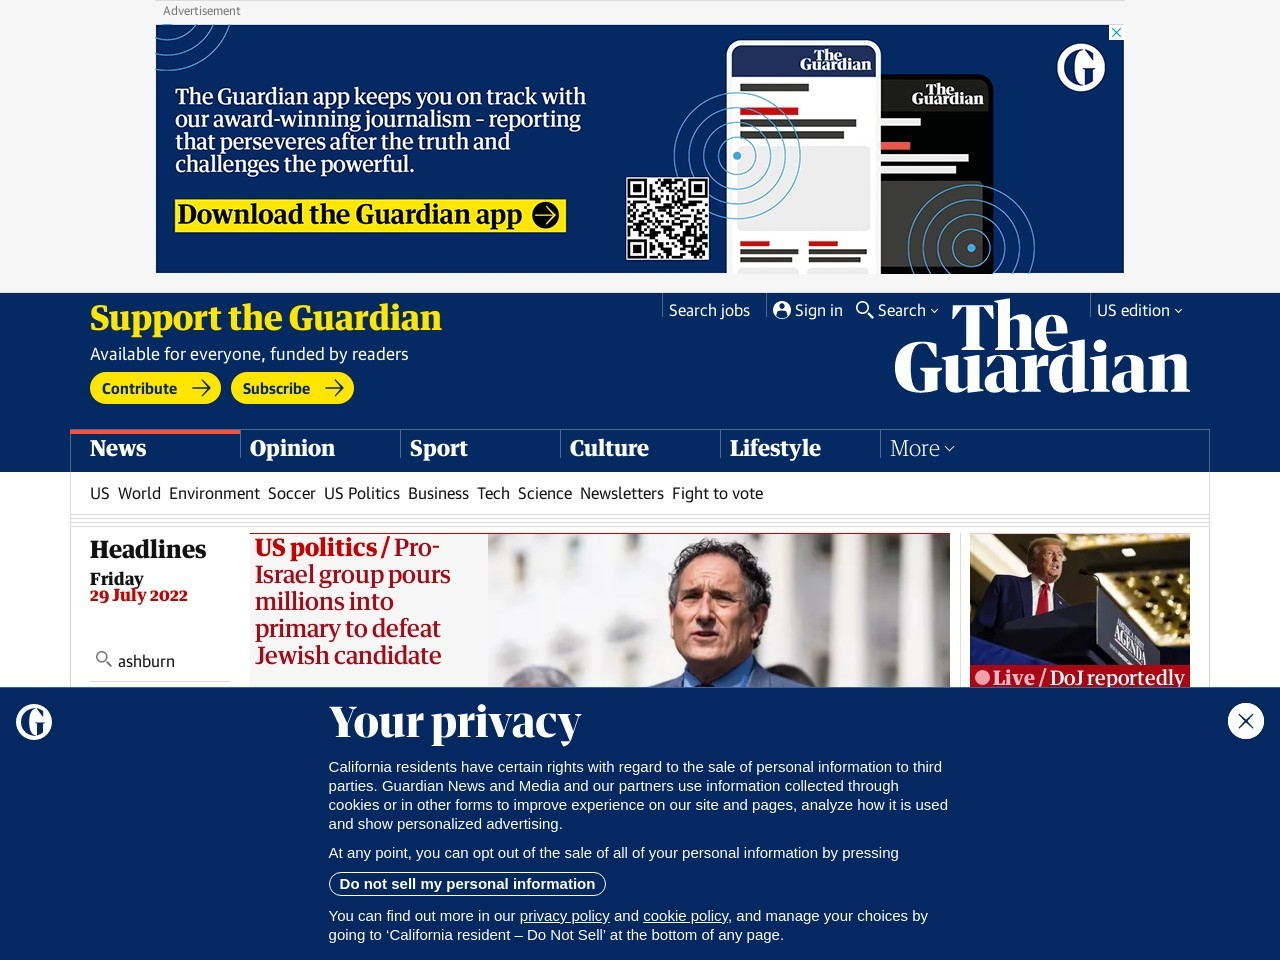 https://www.theguardian.com/technology/2018/dec/01/instagram-facebook-controversy-social-network-tech